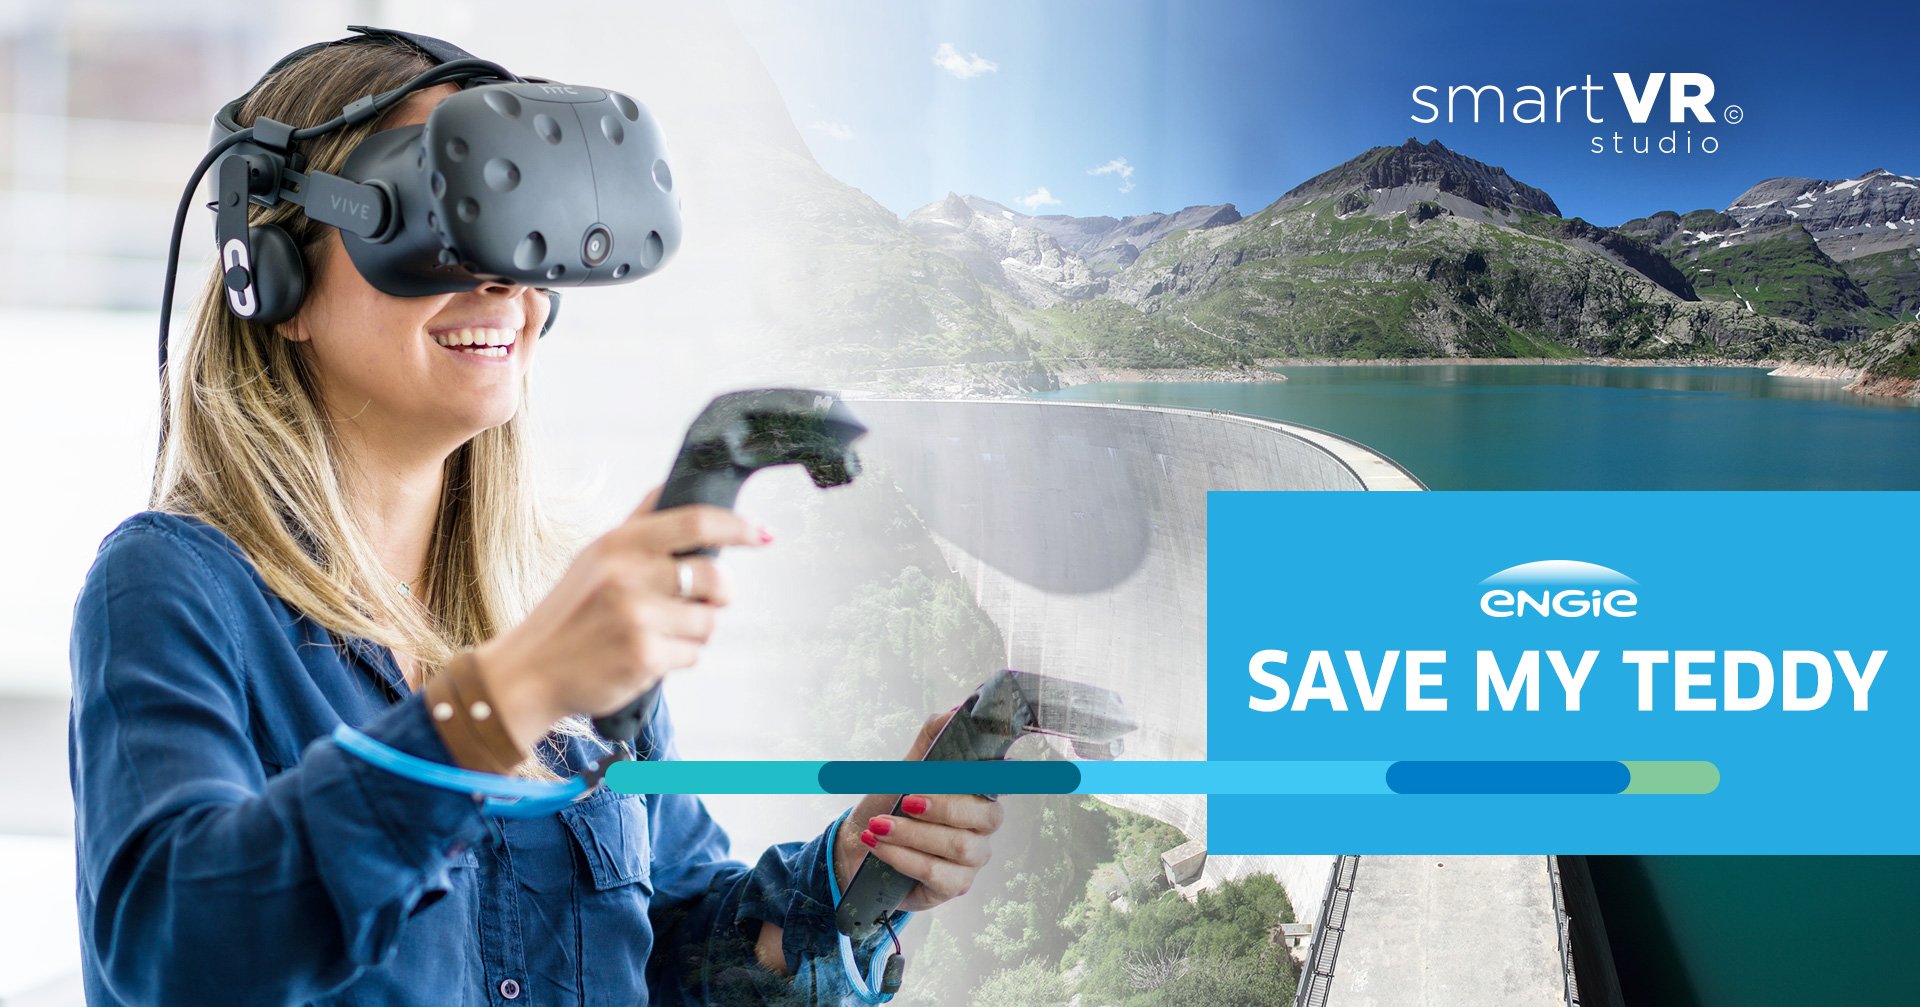 agence realite virtuelle communication brand content save my teddy engie studio vr engie